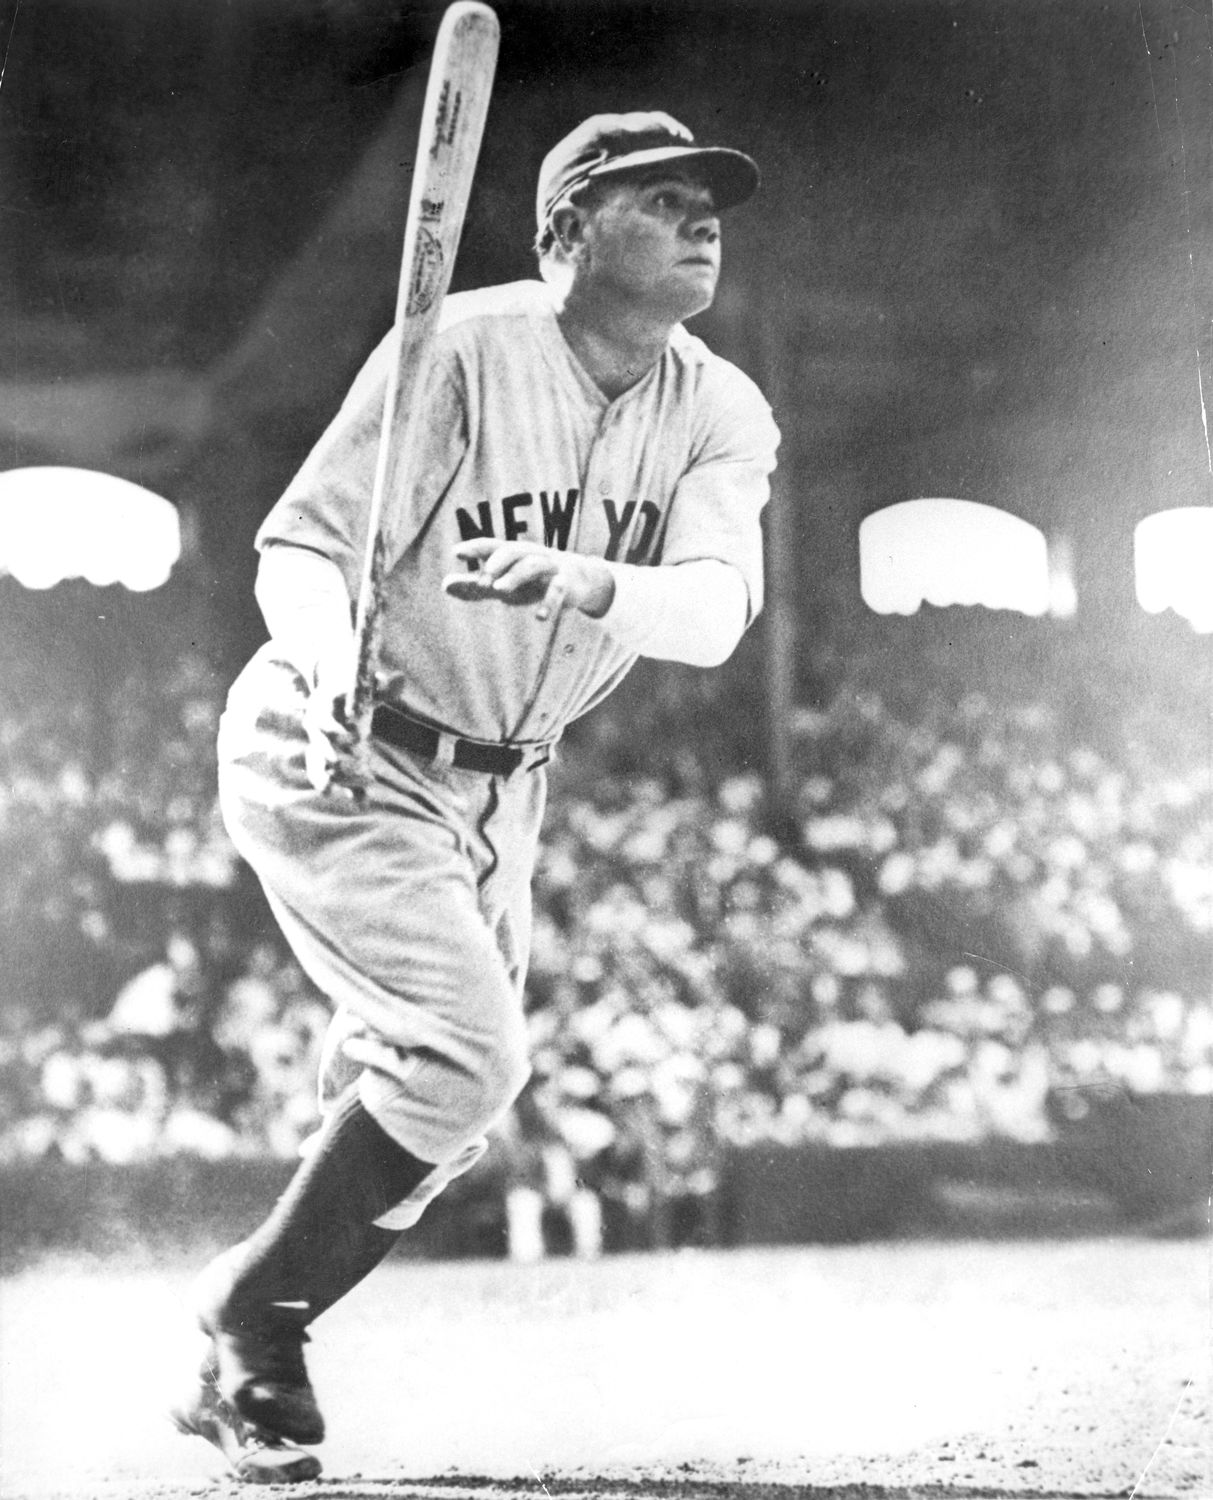 How many home runs did babe ruth hit in 1925-4341